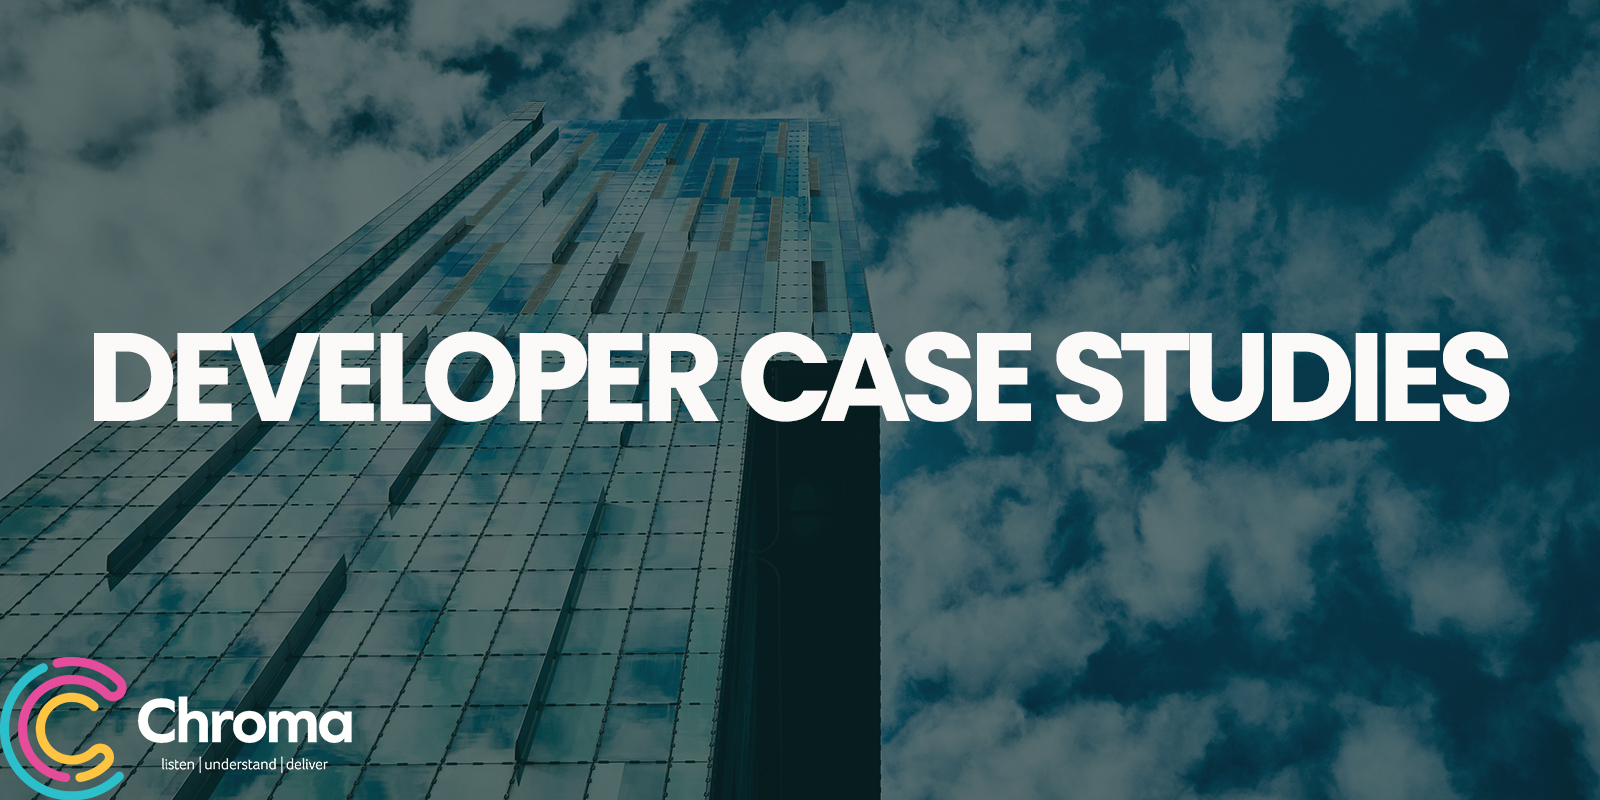 Developer Case Studies